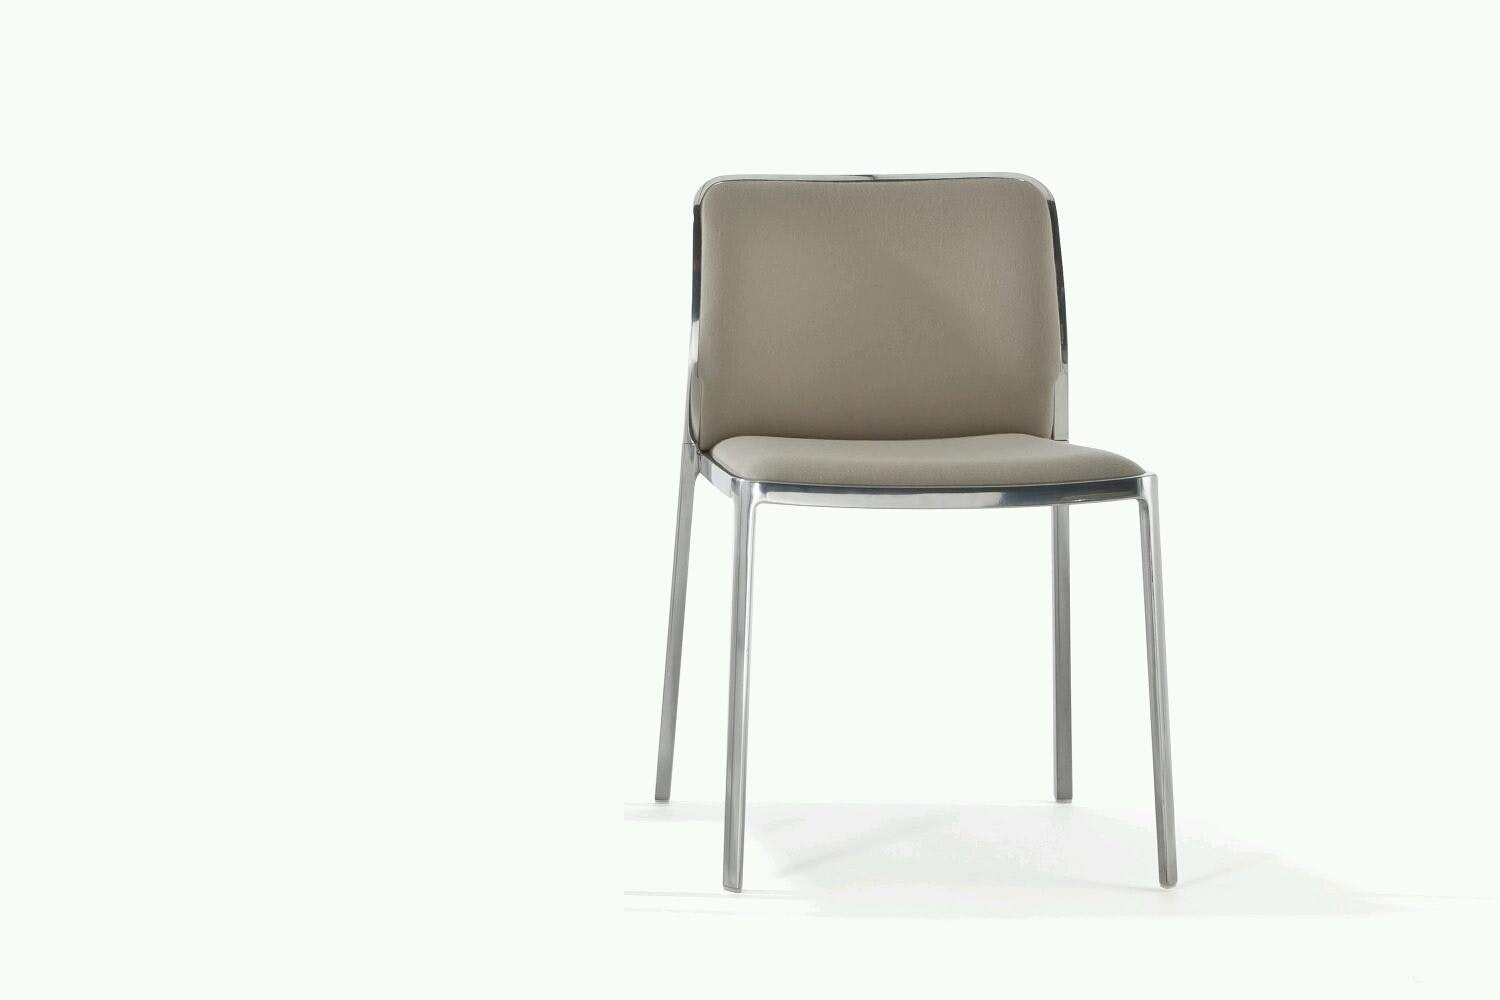 Audrey Soft Shiny Chair by Piero Lissoni for Kartell